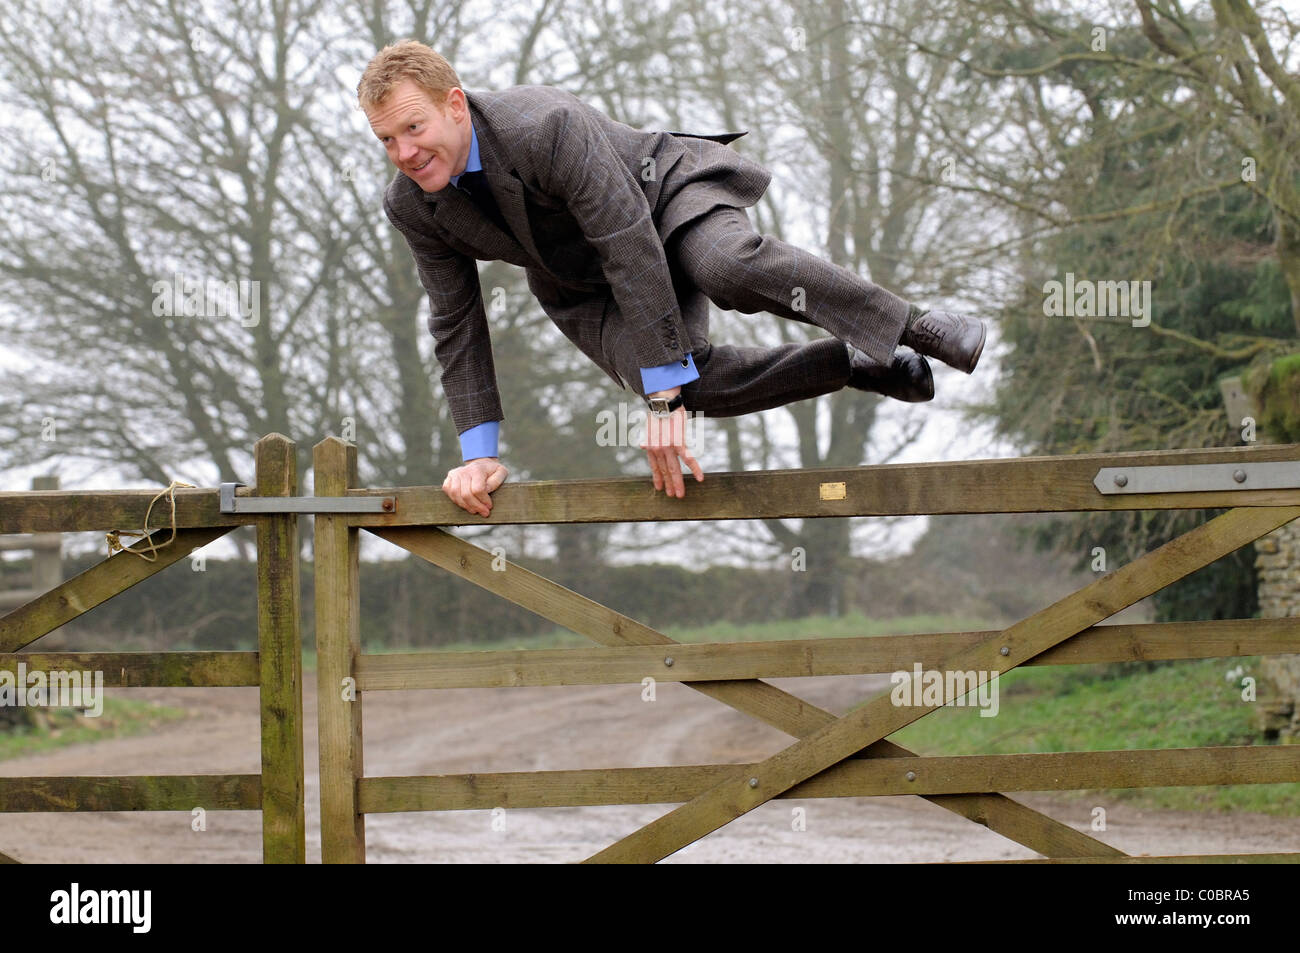 Adam Henson Cotswold farmer and tv presenter jumps his farm gate wearing a bespoke Savile Row tailored suit - Stock Image